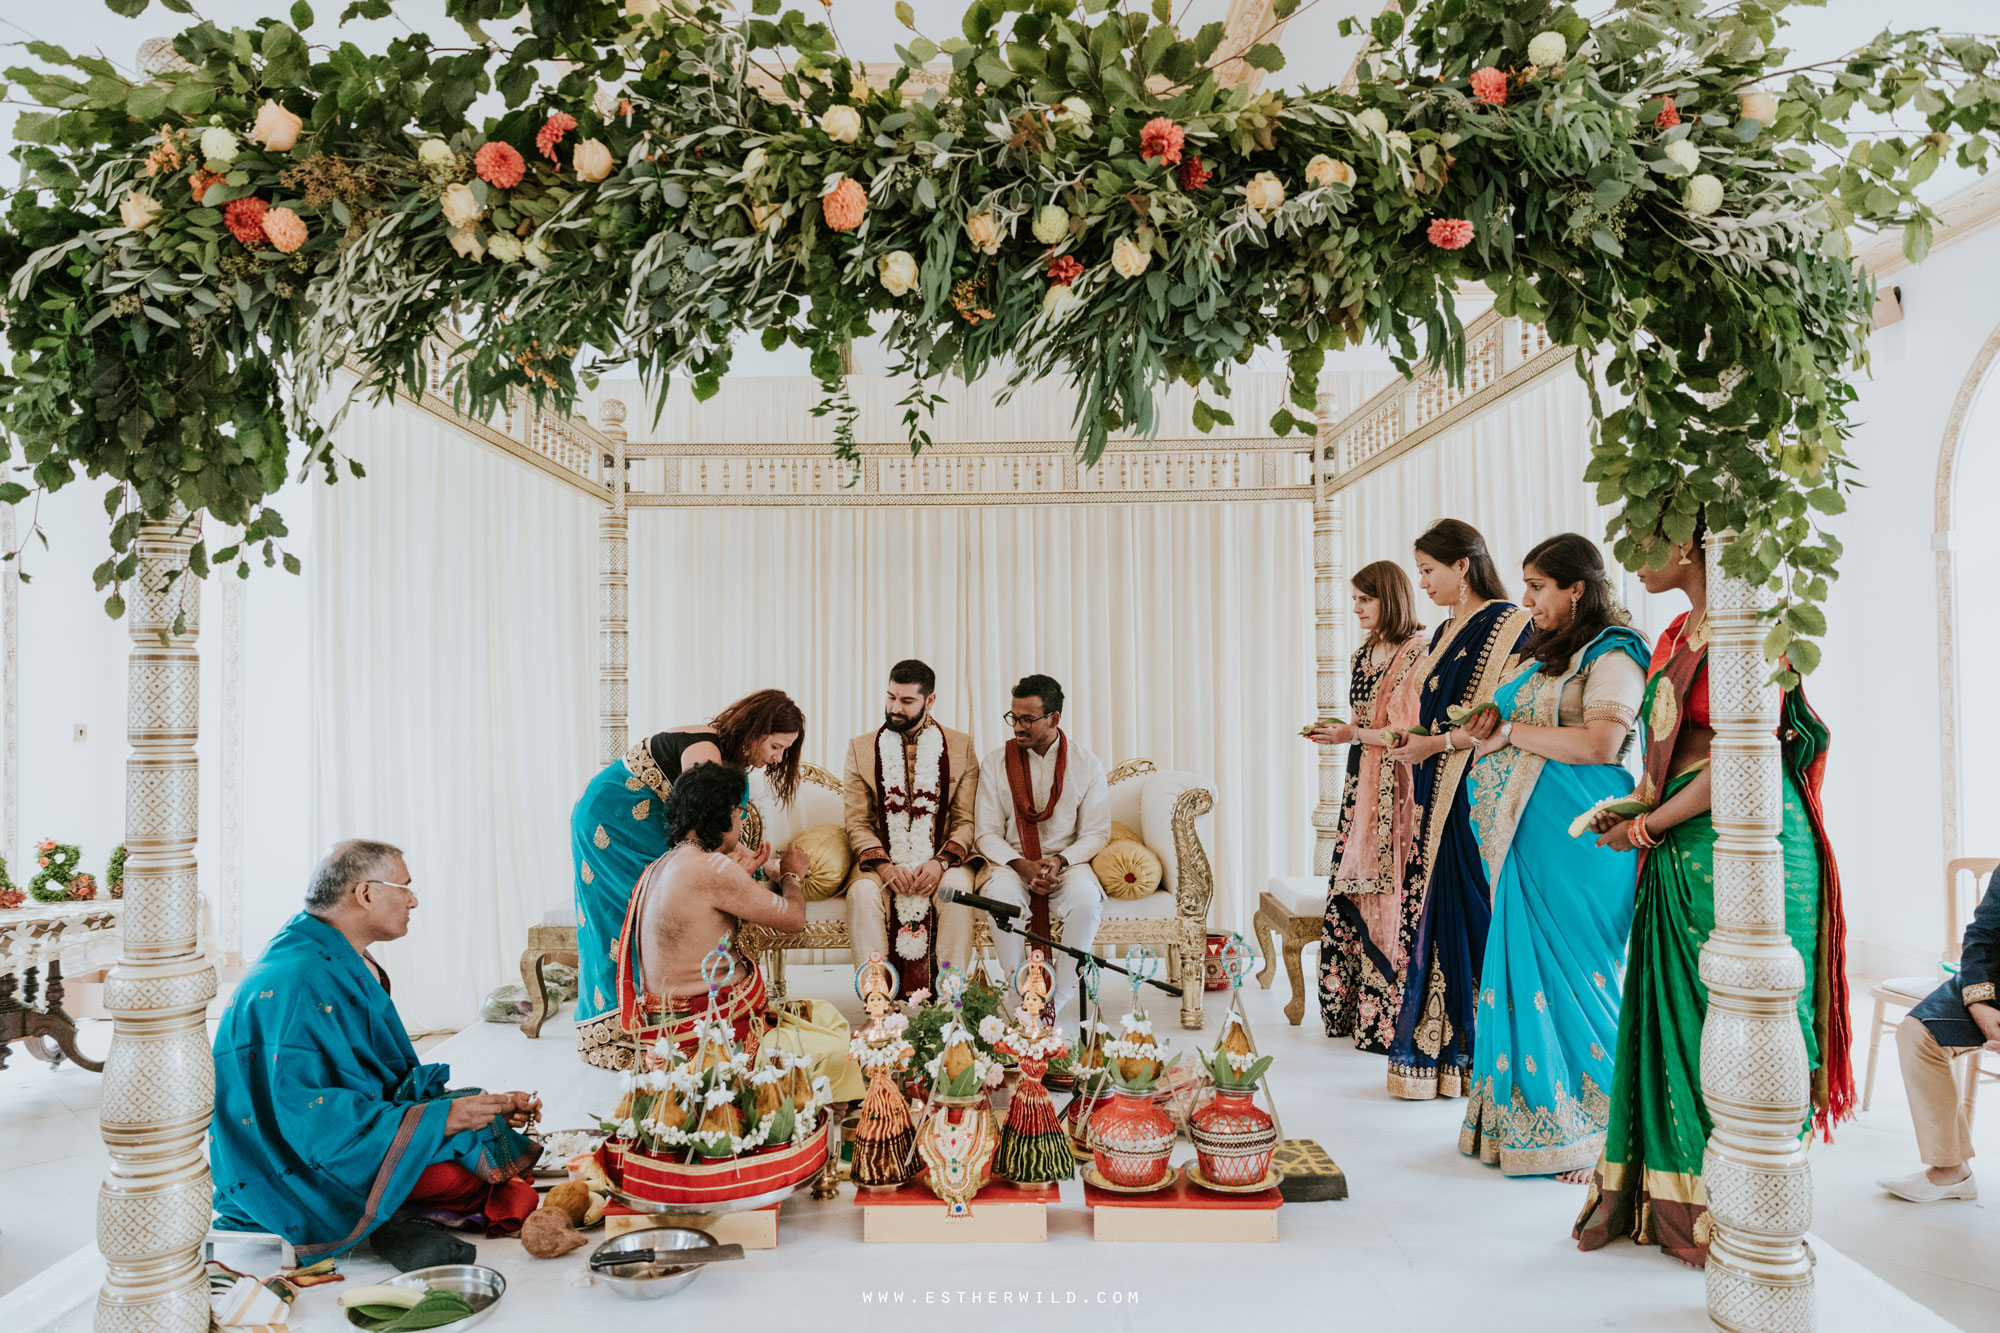 Northbrook_Park_Farnham_Surrey_London_Wedding_Hindu_Fusion_Esther_Wild_Photographer_IMG_3771.jpg